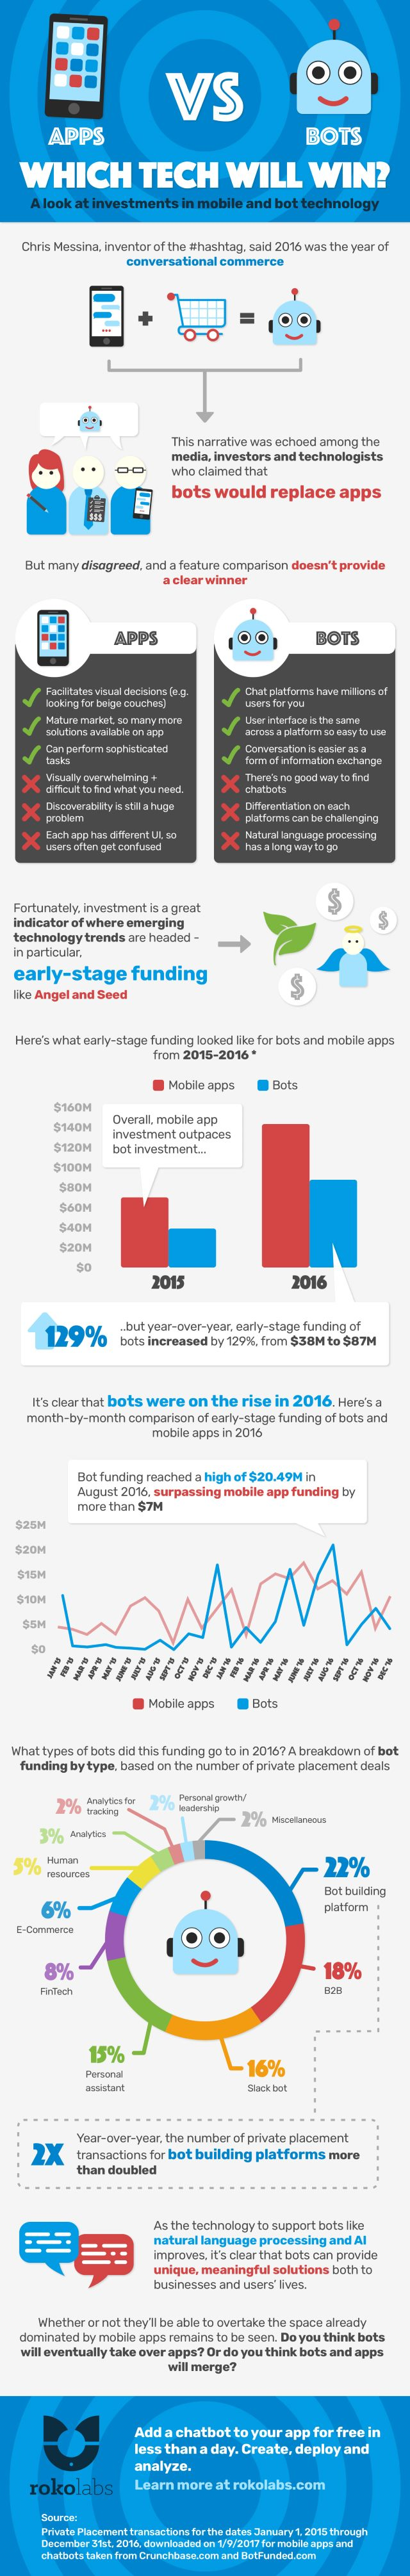 ROKO apps v bots infographic